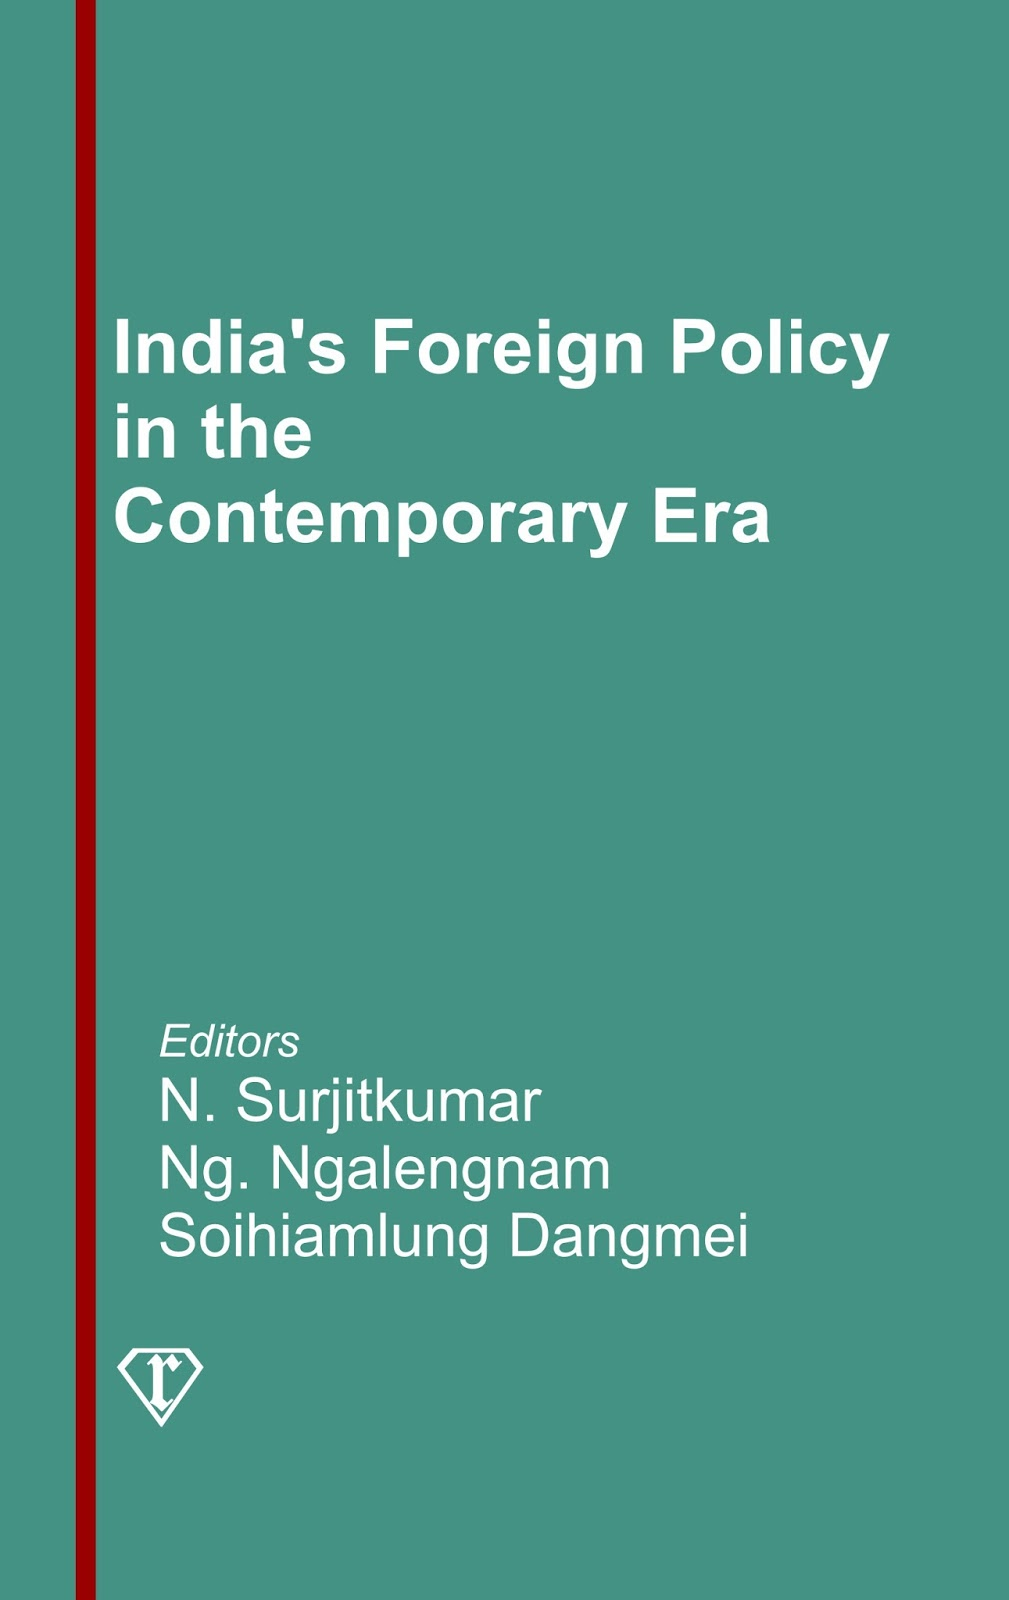 indian foreign policy Indian foreign policy - an overview for upsc civil services exam 'foreign policy is the sum total of principles, interests and objectives which a state formulates in conducting its relations with other states.